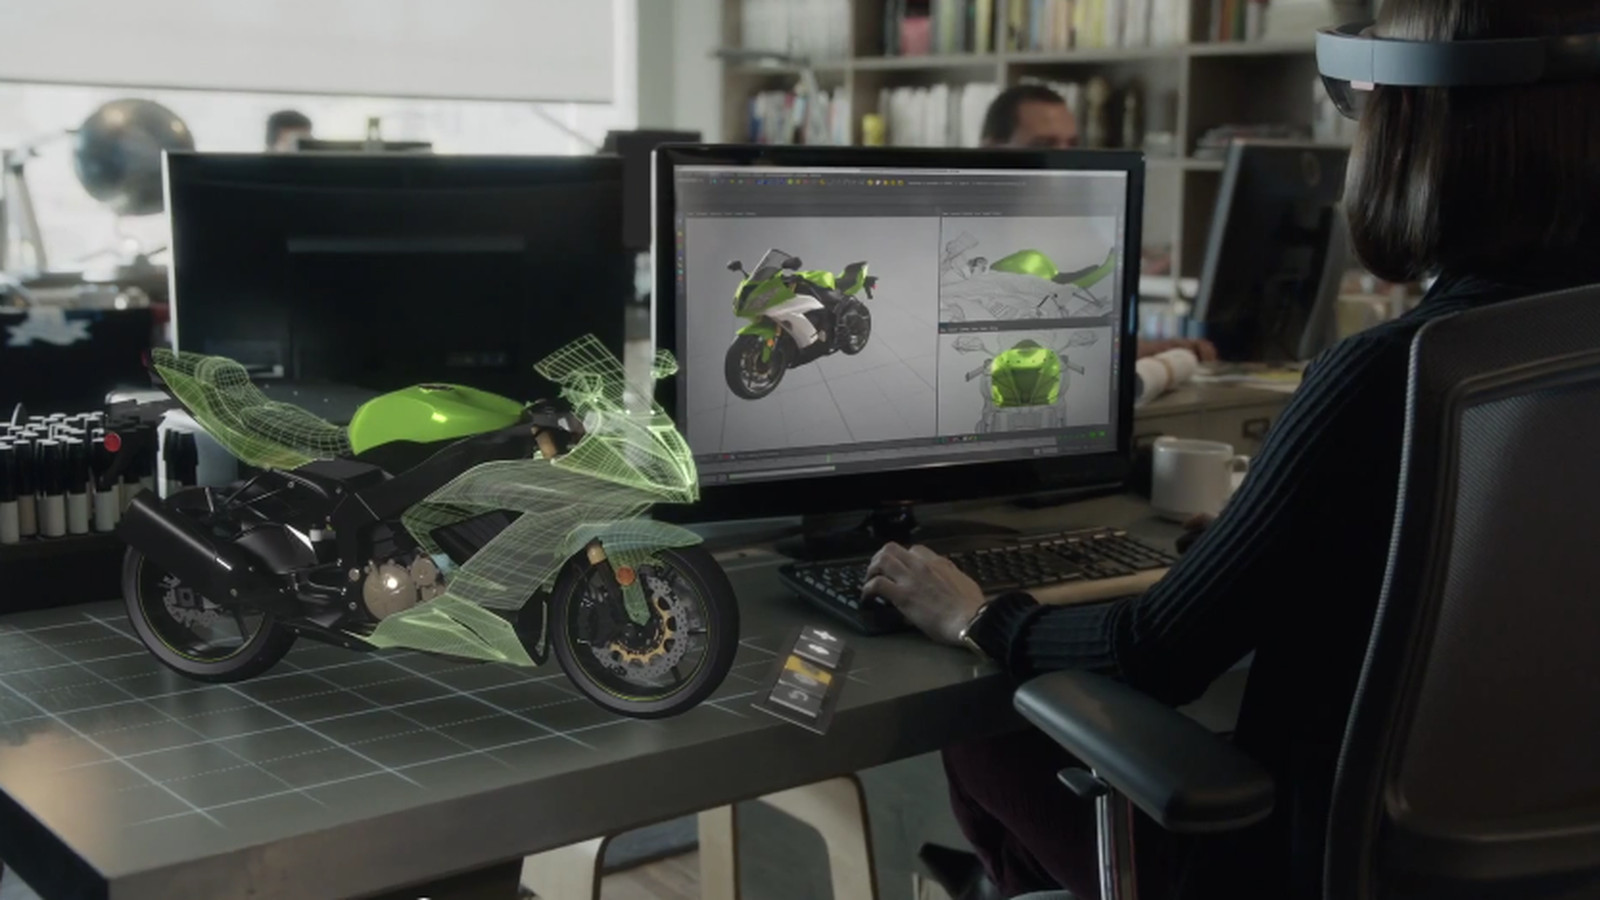 Microsofts HoloLens team is obsessed with motorcycles